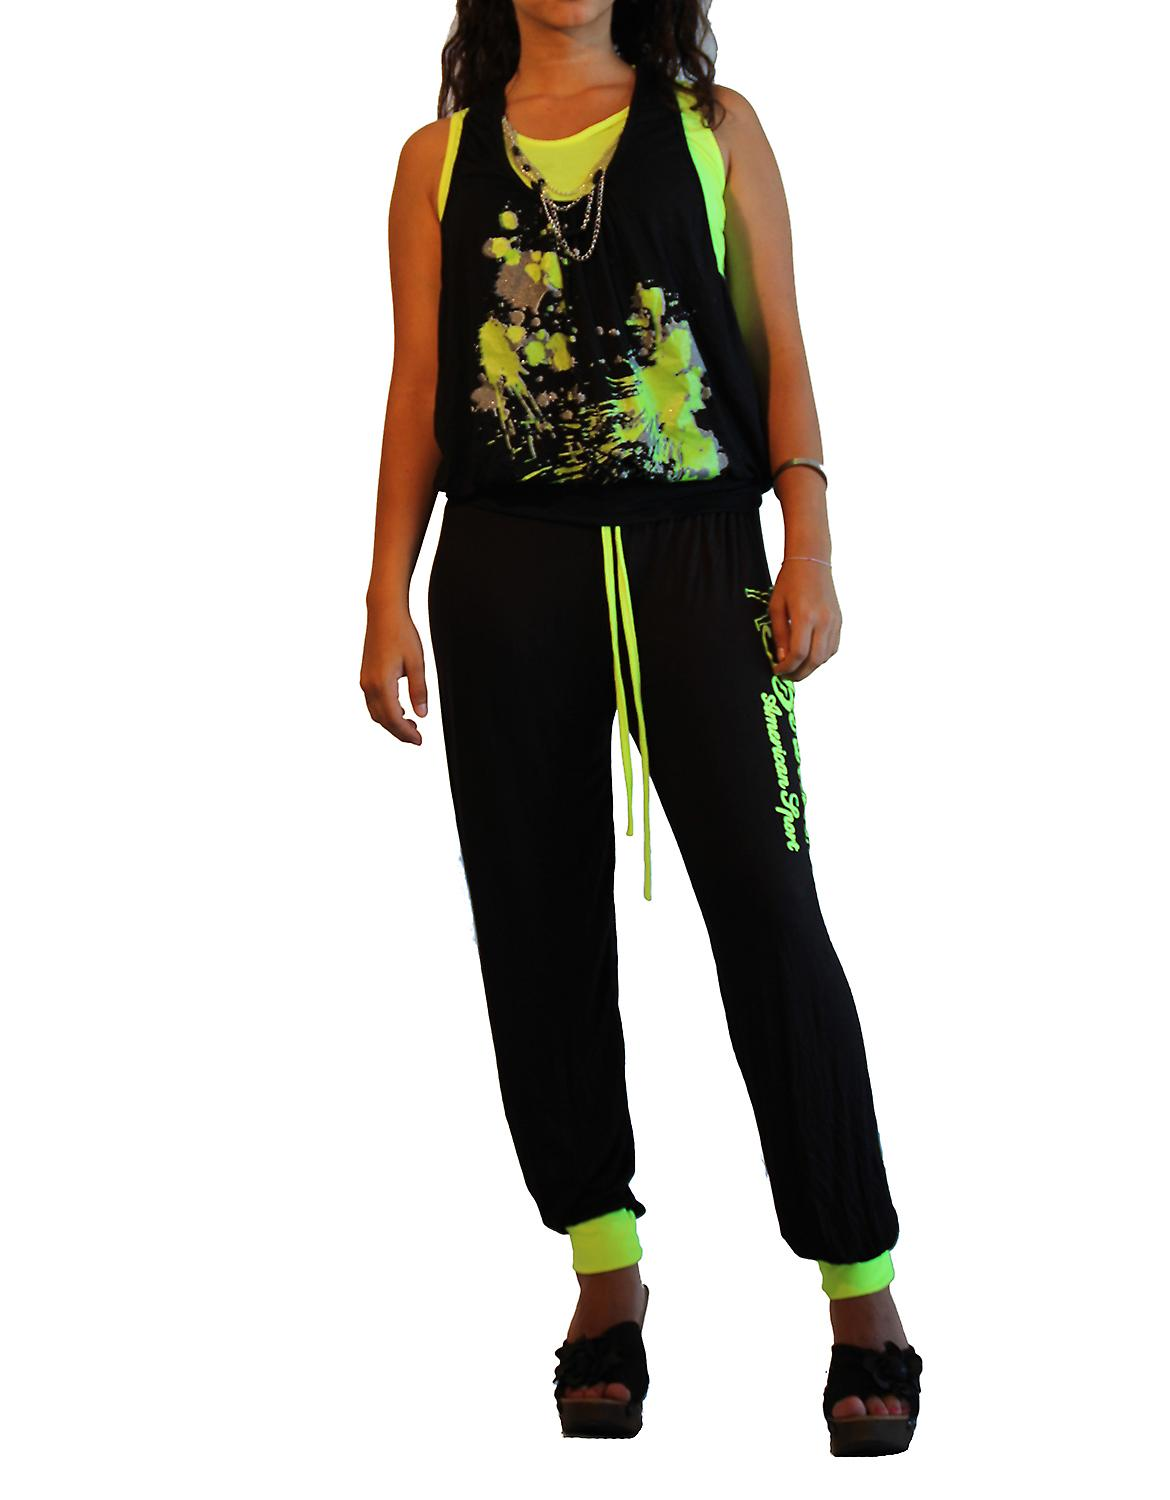 Waooh - Mode - Ensemble jogging fluo